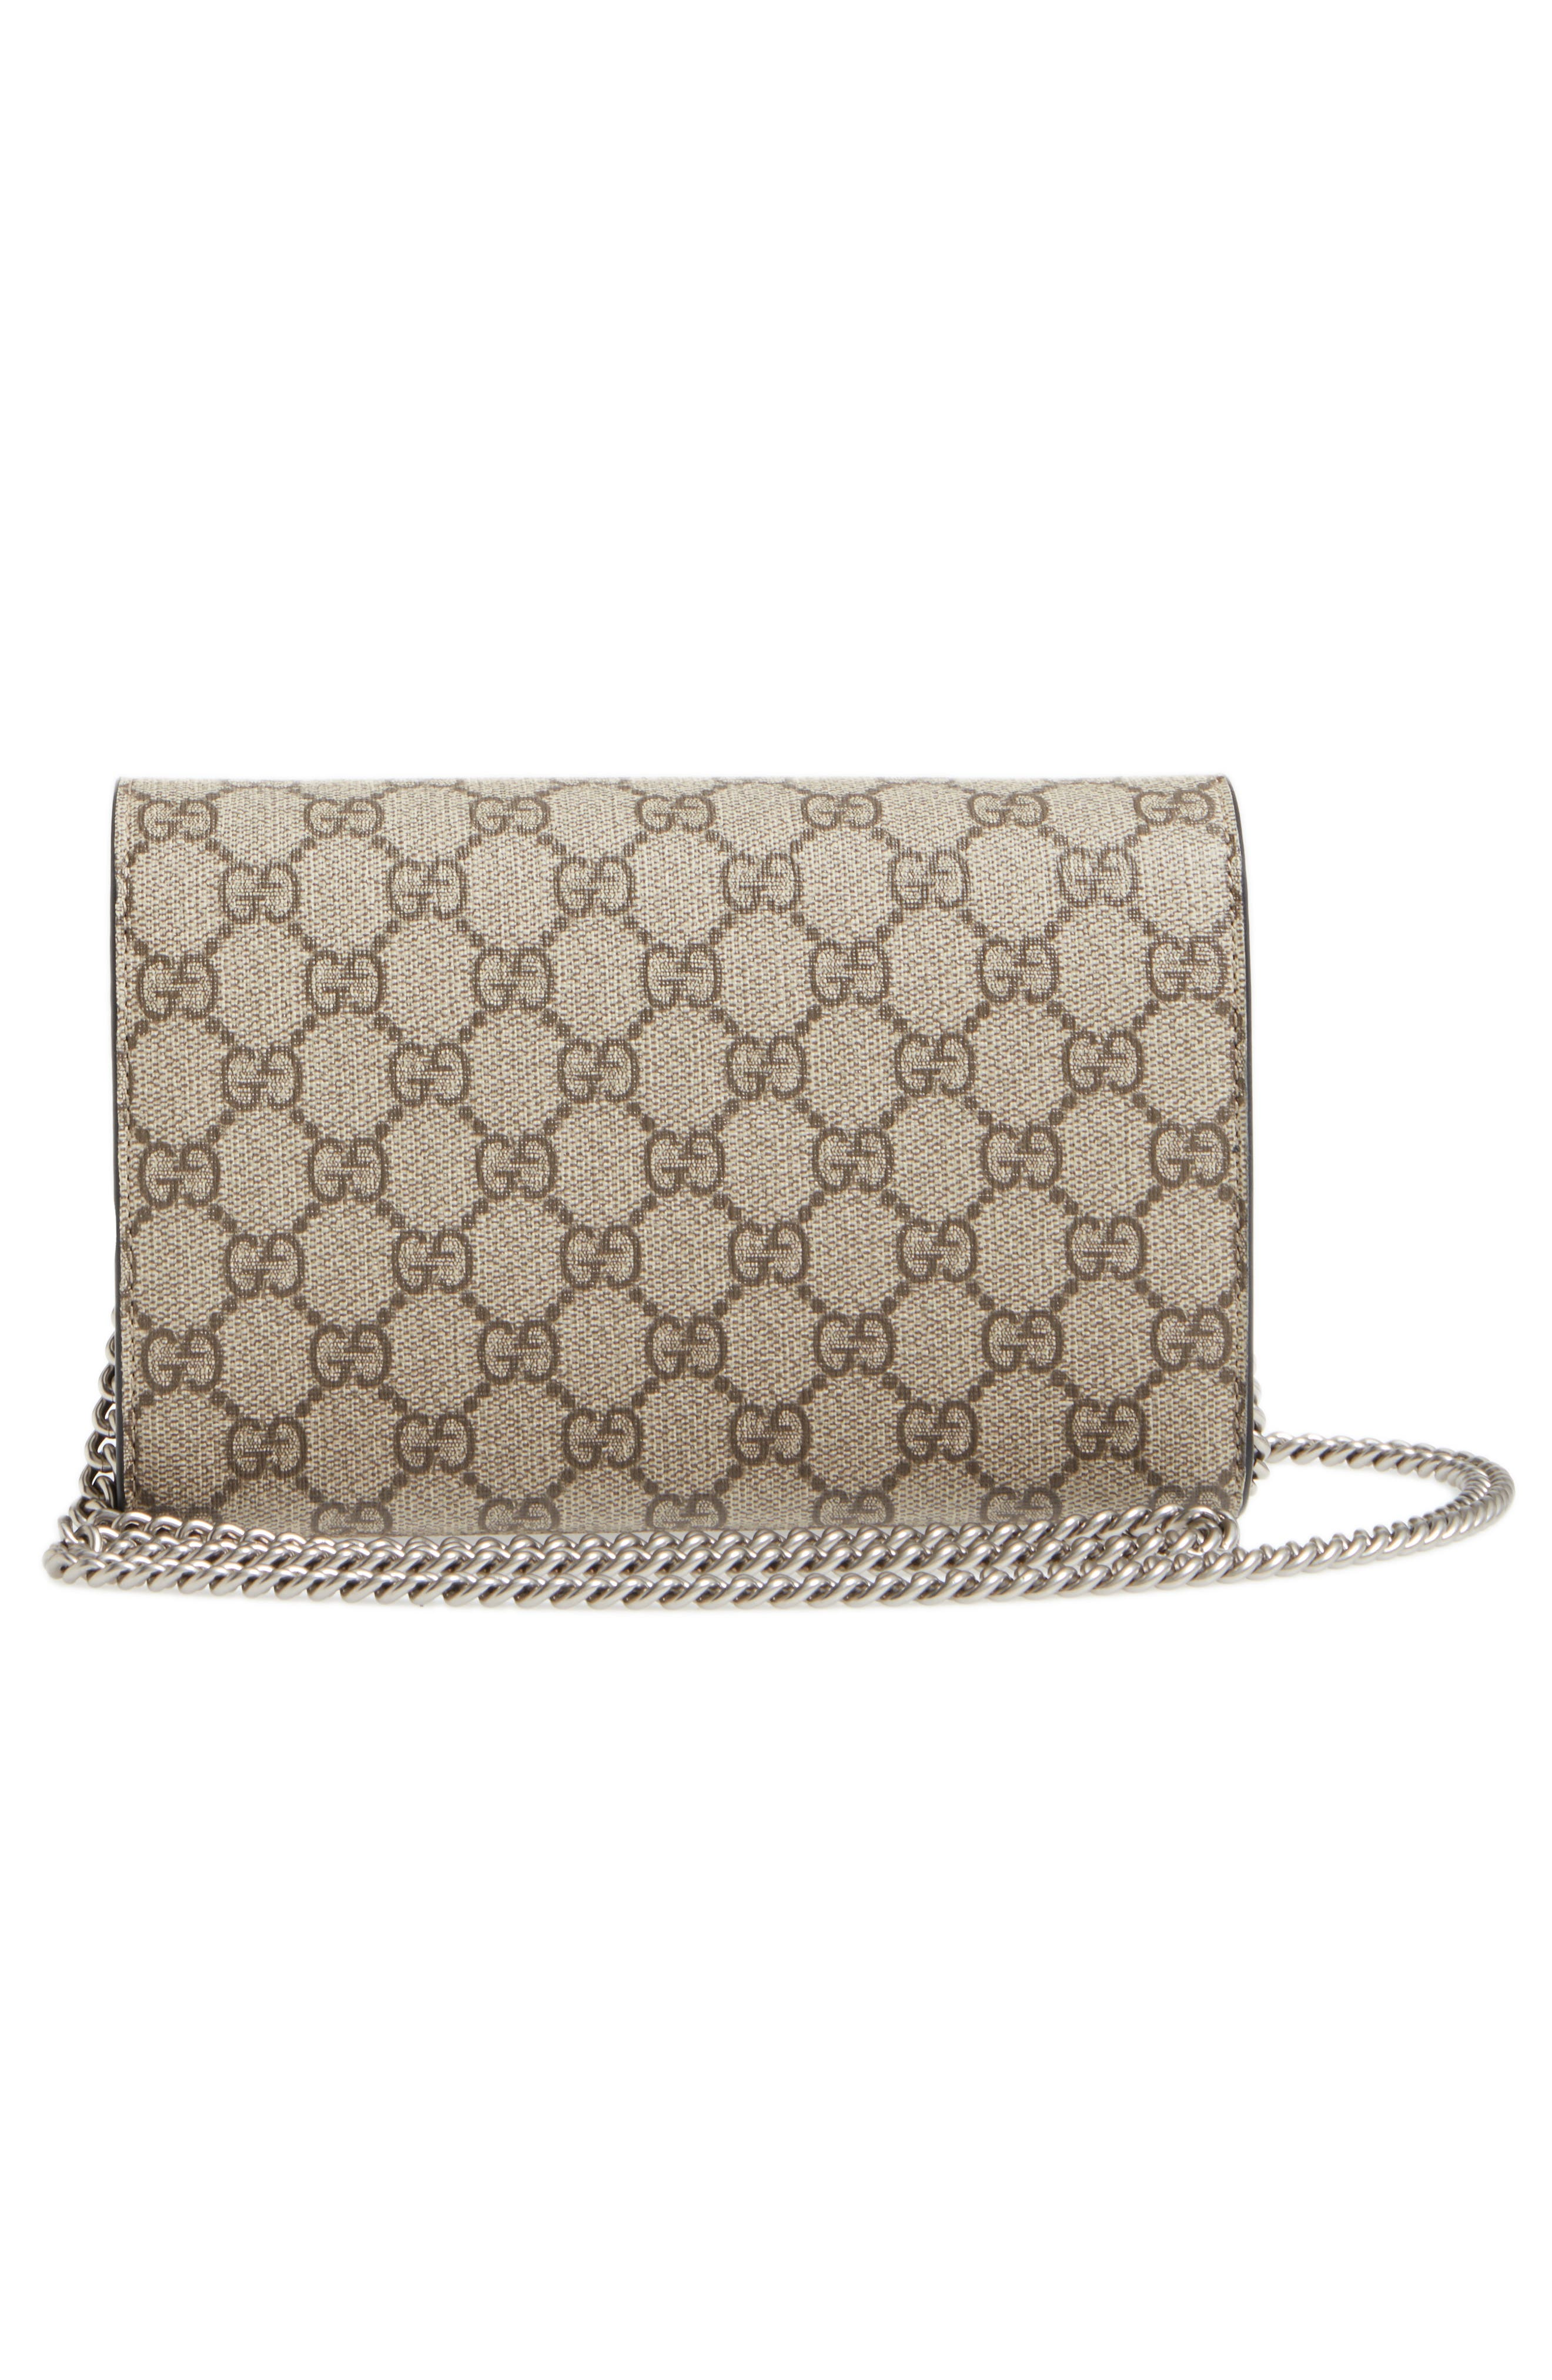 GUCCI, Dionysus GG Supreme Canvas Wallet on a Chain, Alternate thumbnail 3, color, BEIGE EBONY/NERO